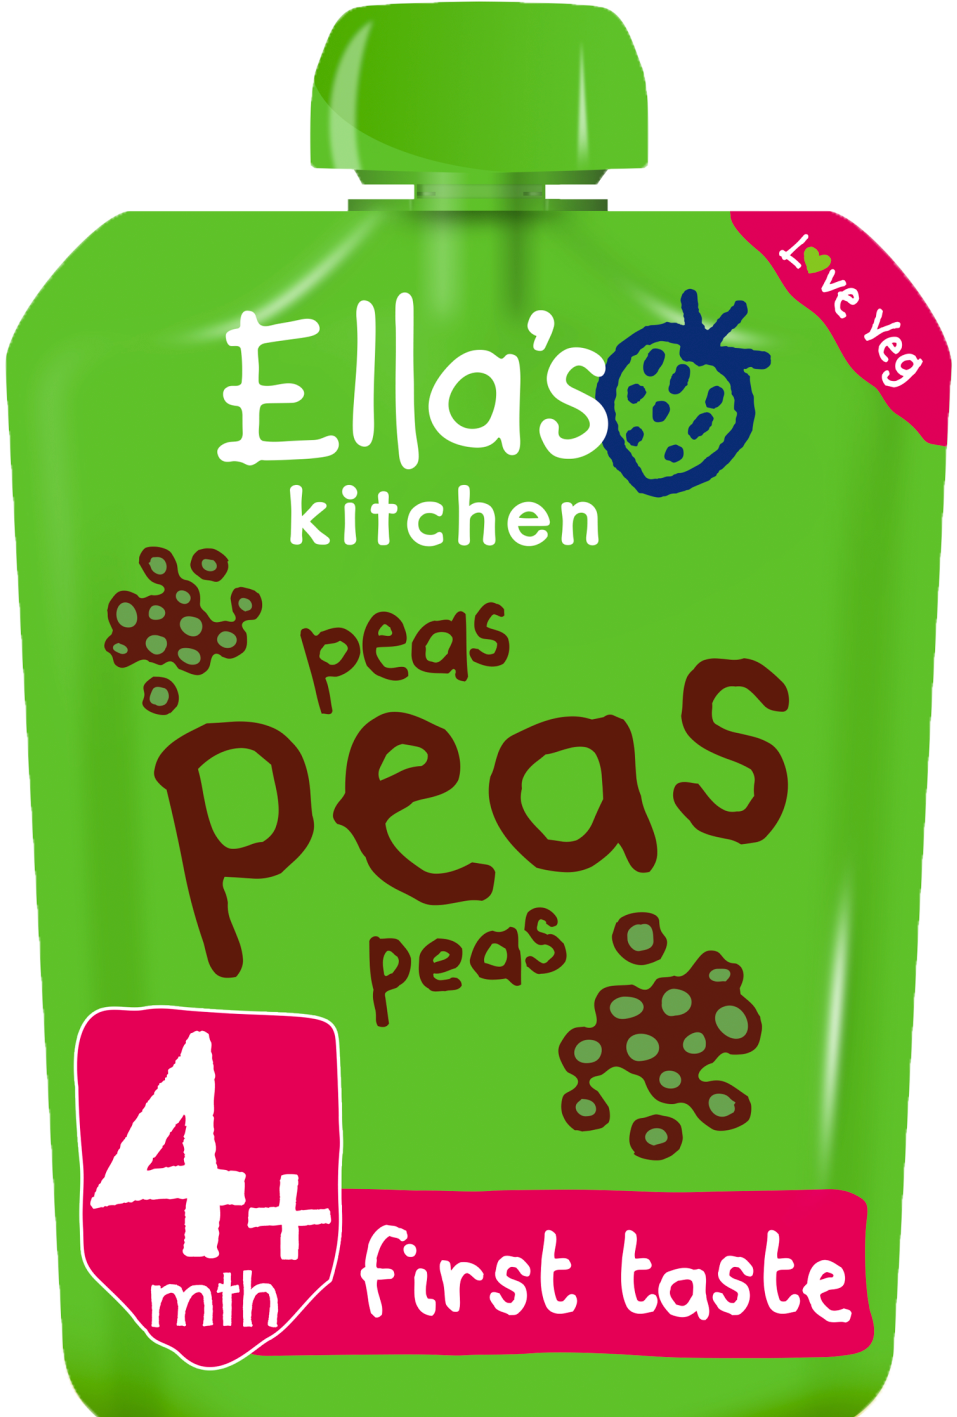 Ellas kitchen peas peas peas pouch front of pack O